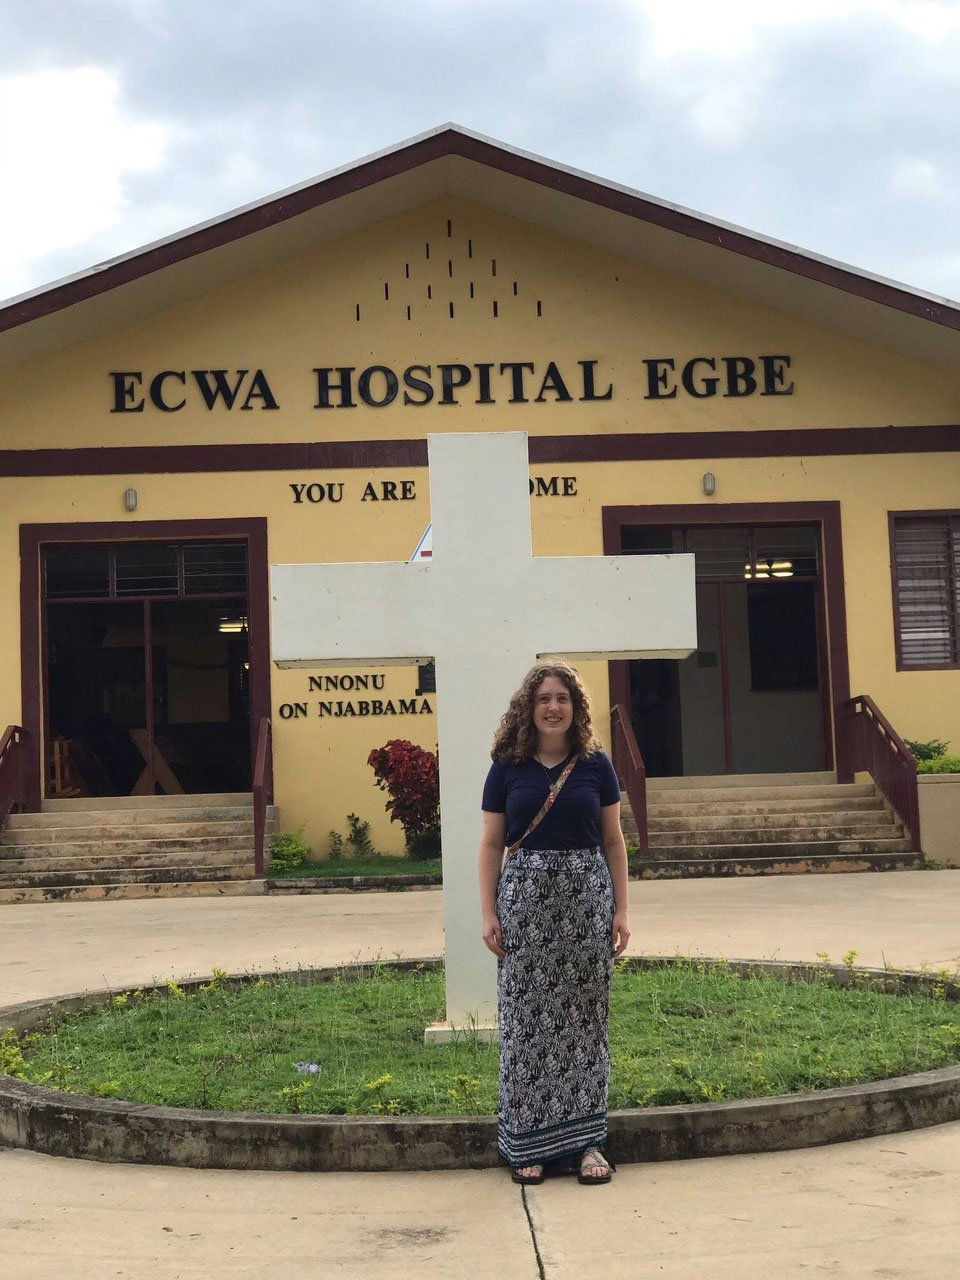 Julianne in front of Egbe Hospital